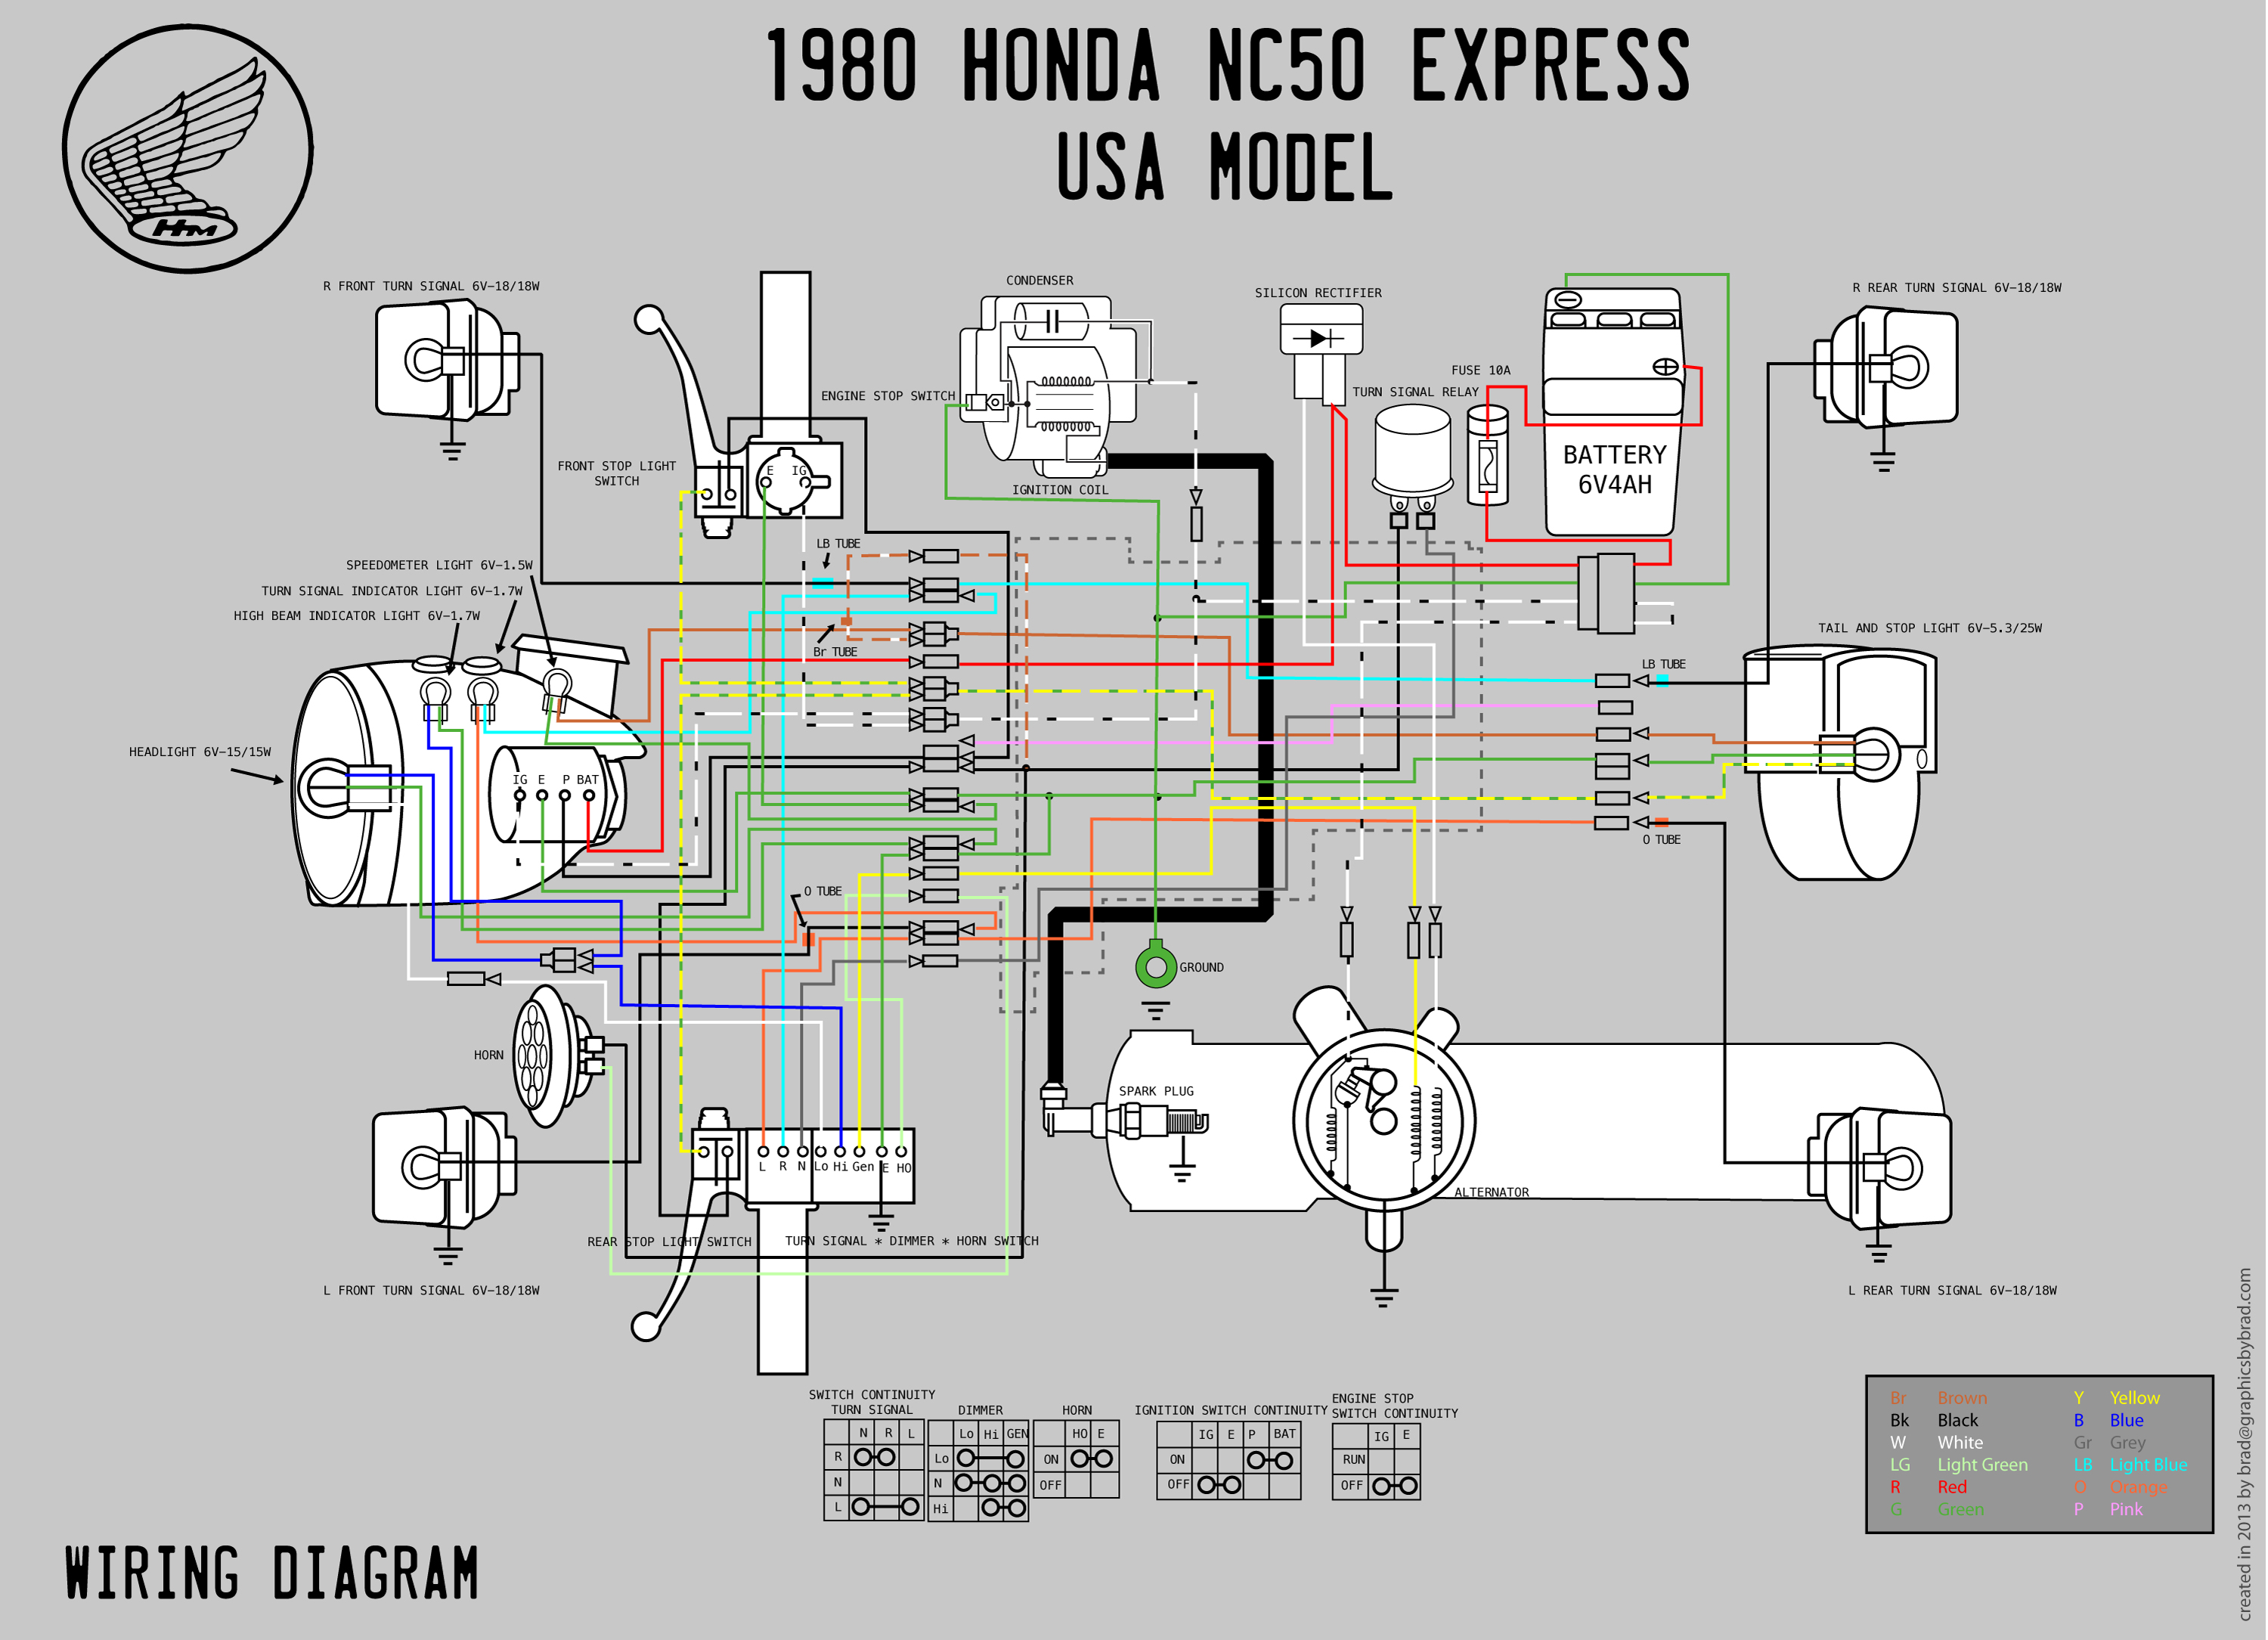 Honda Nc50 Wiring Diagram : Honda nc wiring diagram moped wiki